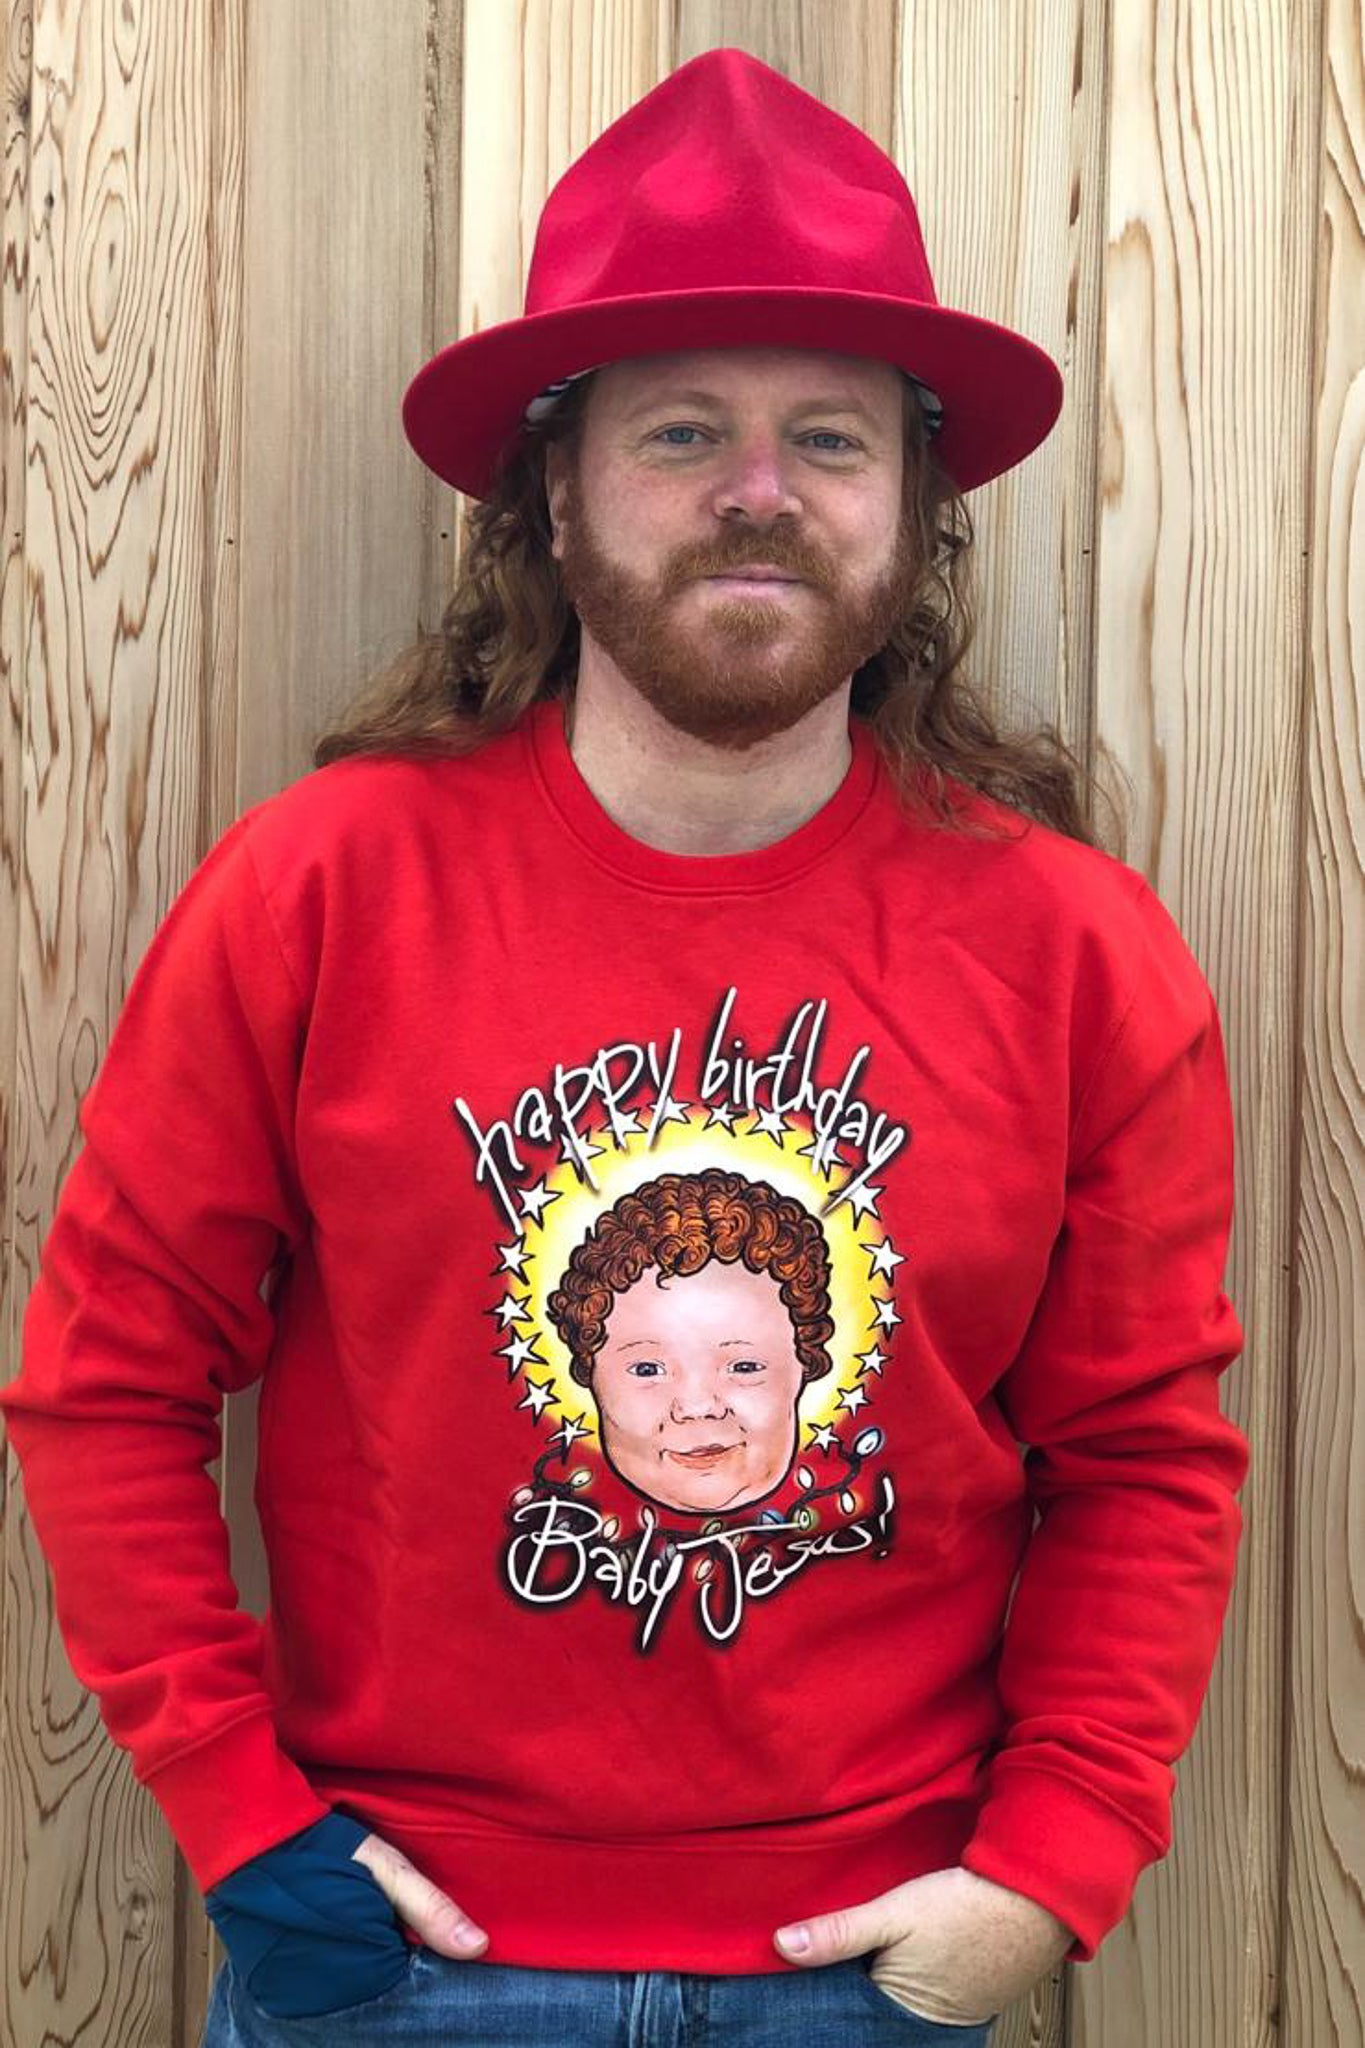 HBD Baby Jesus! Crimbo Sweatshirt in Festive Red